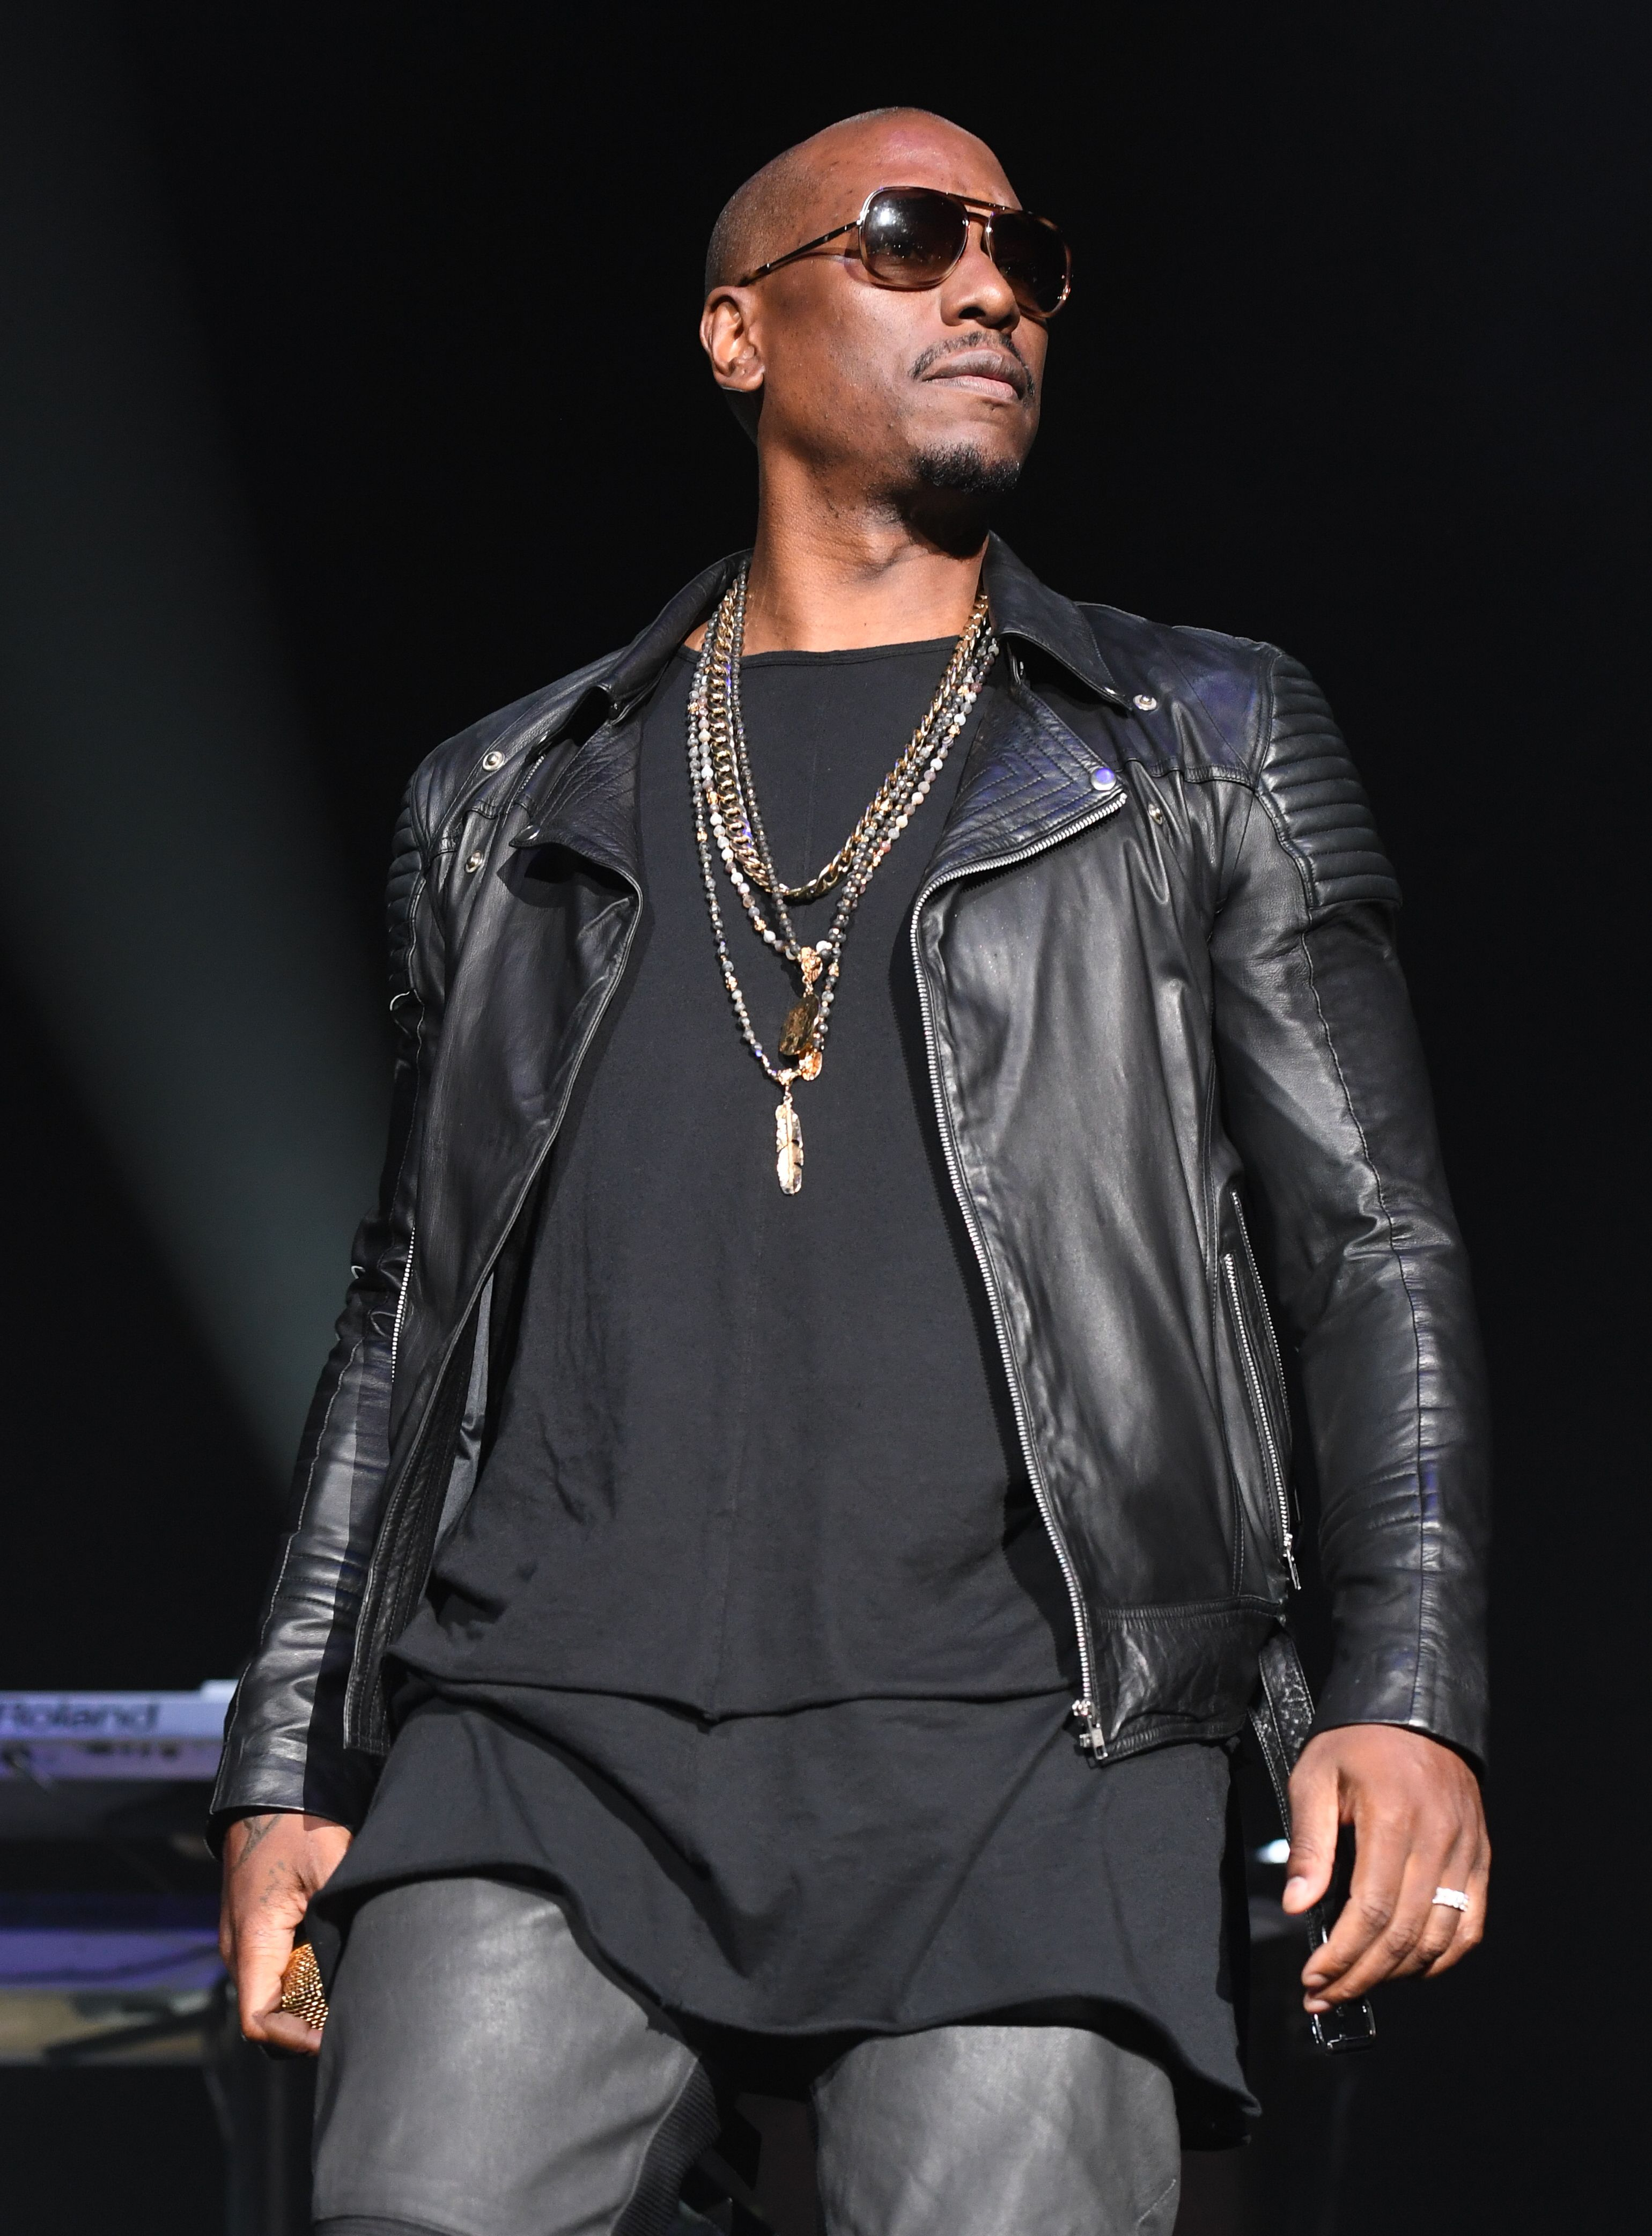 Singer Tyrese Gibson onstage in concert during the R&B Super Jam at Philips Arena on October 28, 2017 in Atlanta, Georgia | Photo: Getty Images